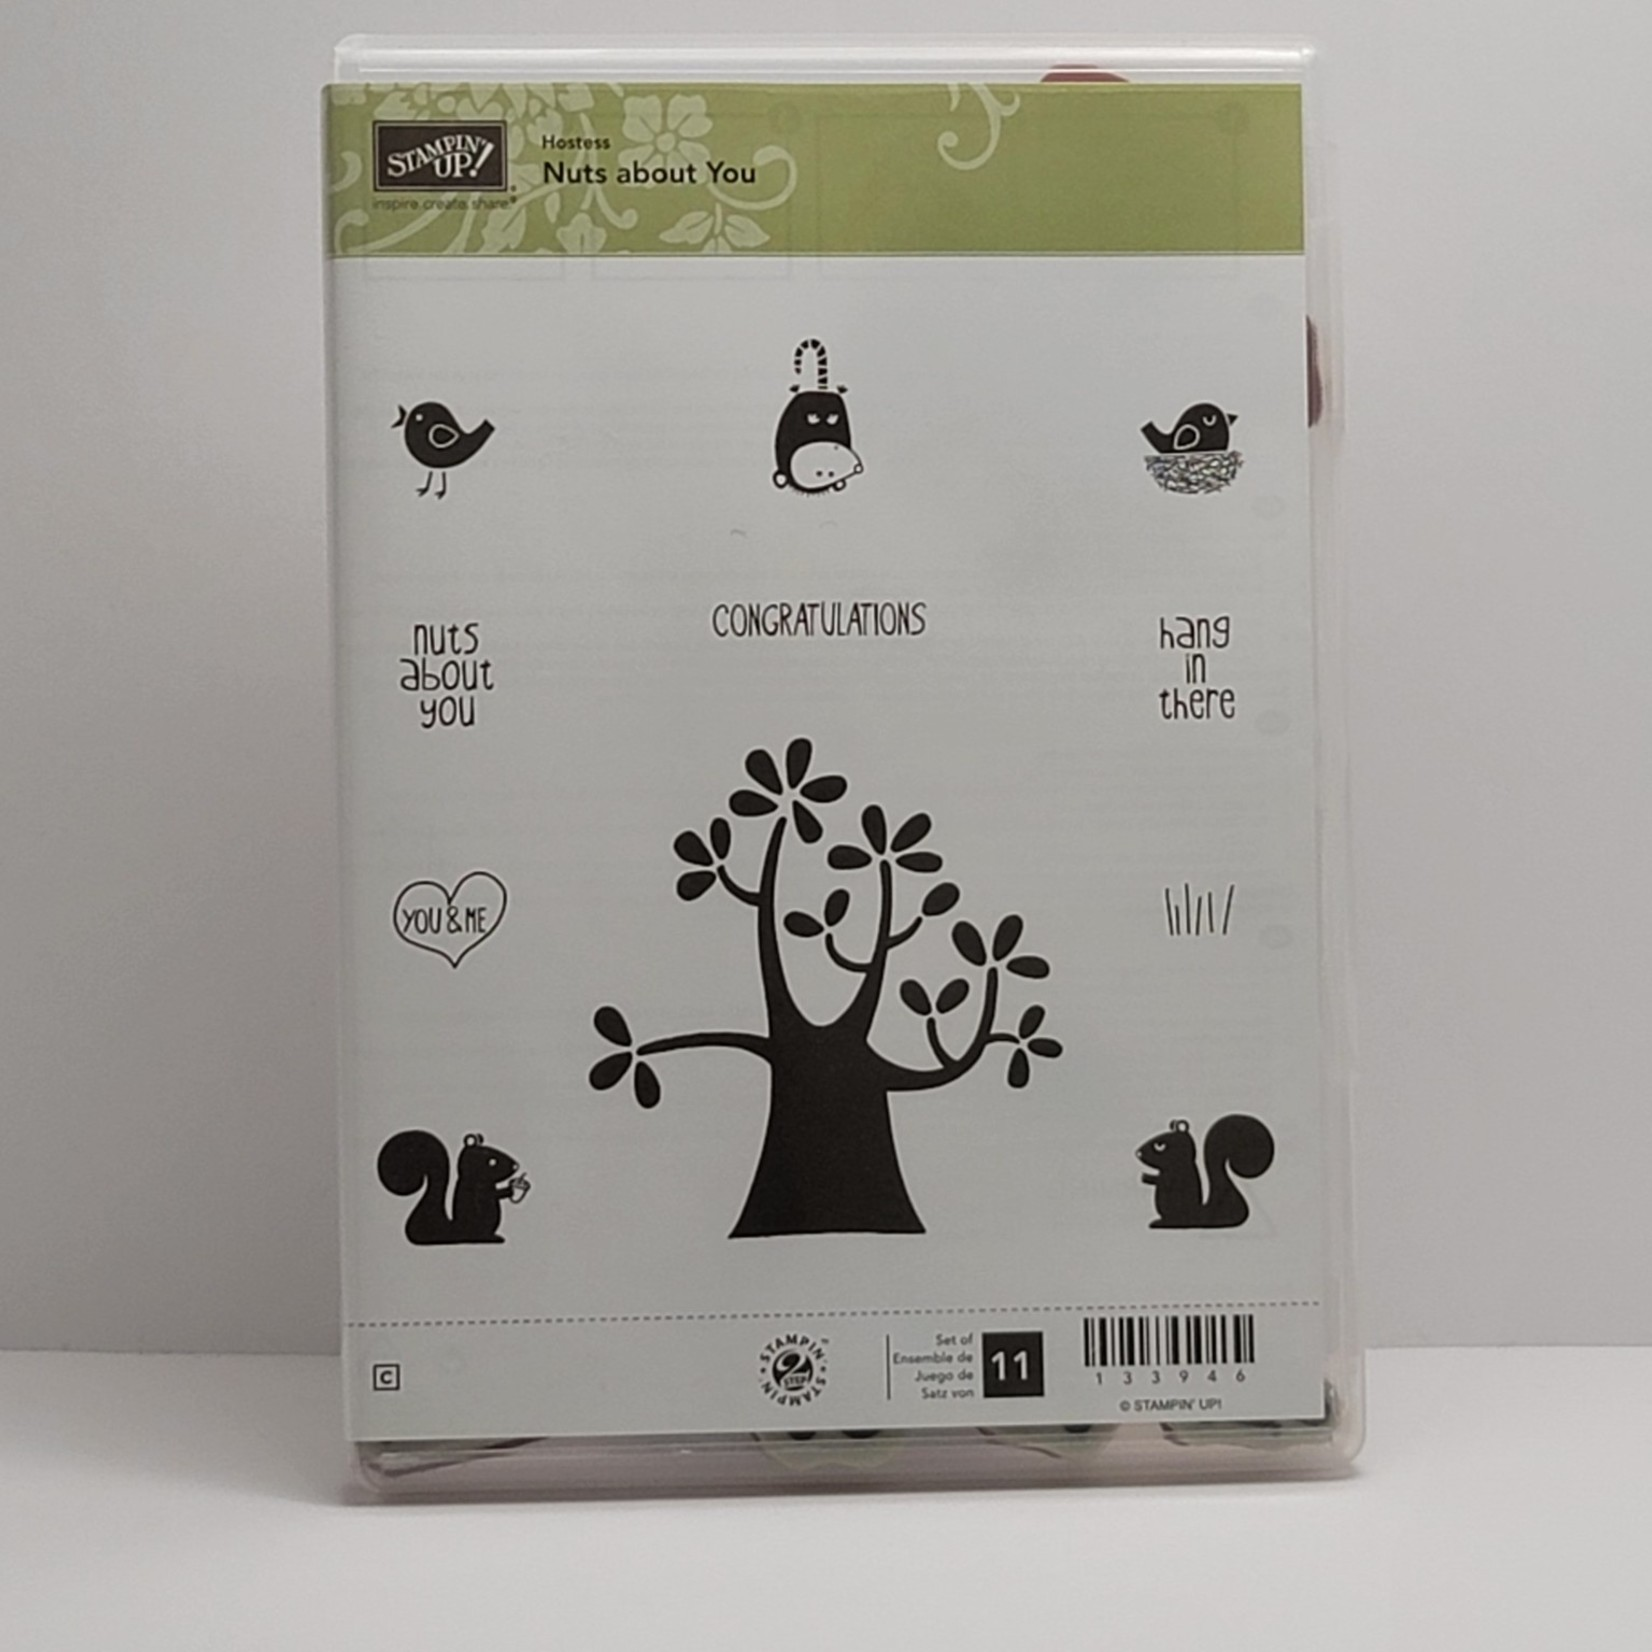 Stampin' Up Stampin' Up - Cling Stamps - Nuts about you